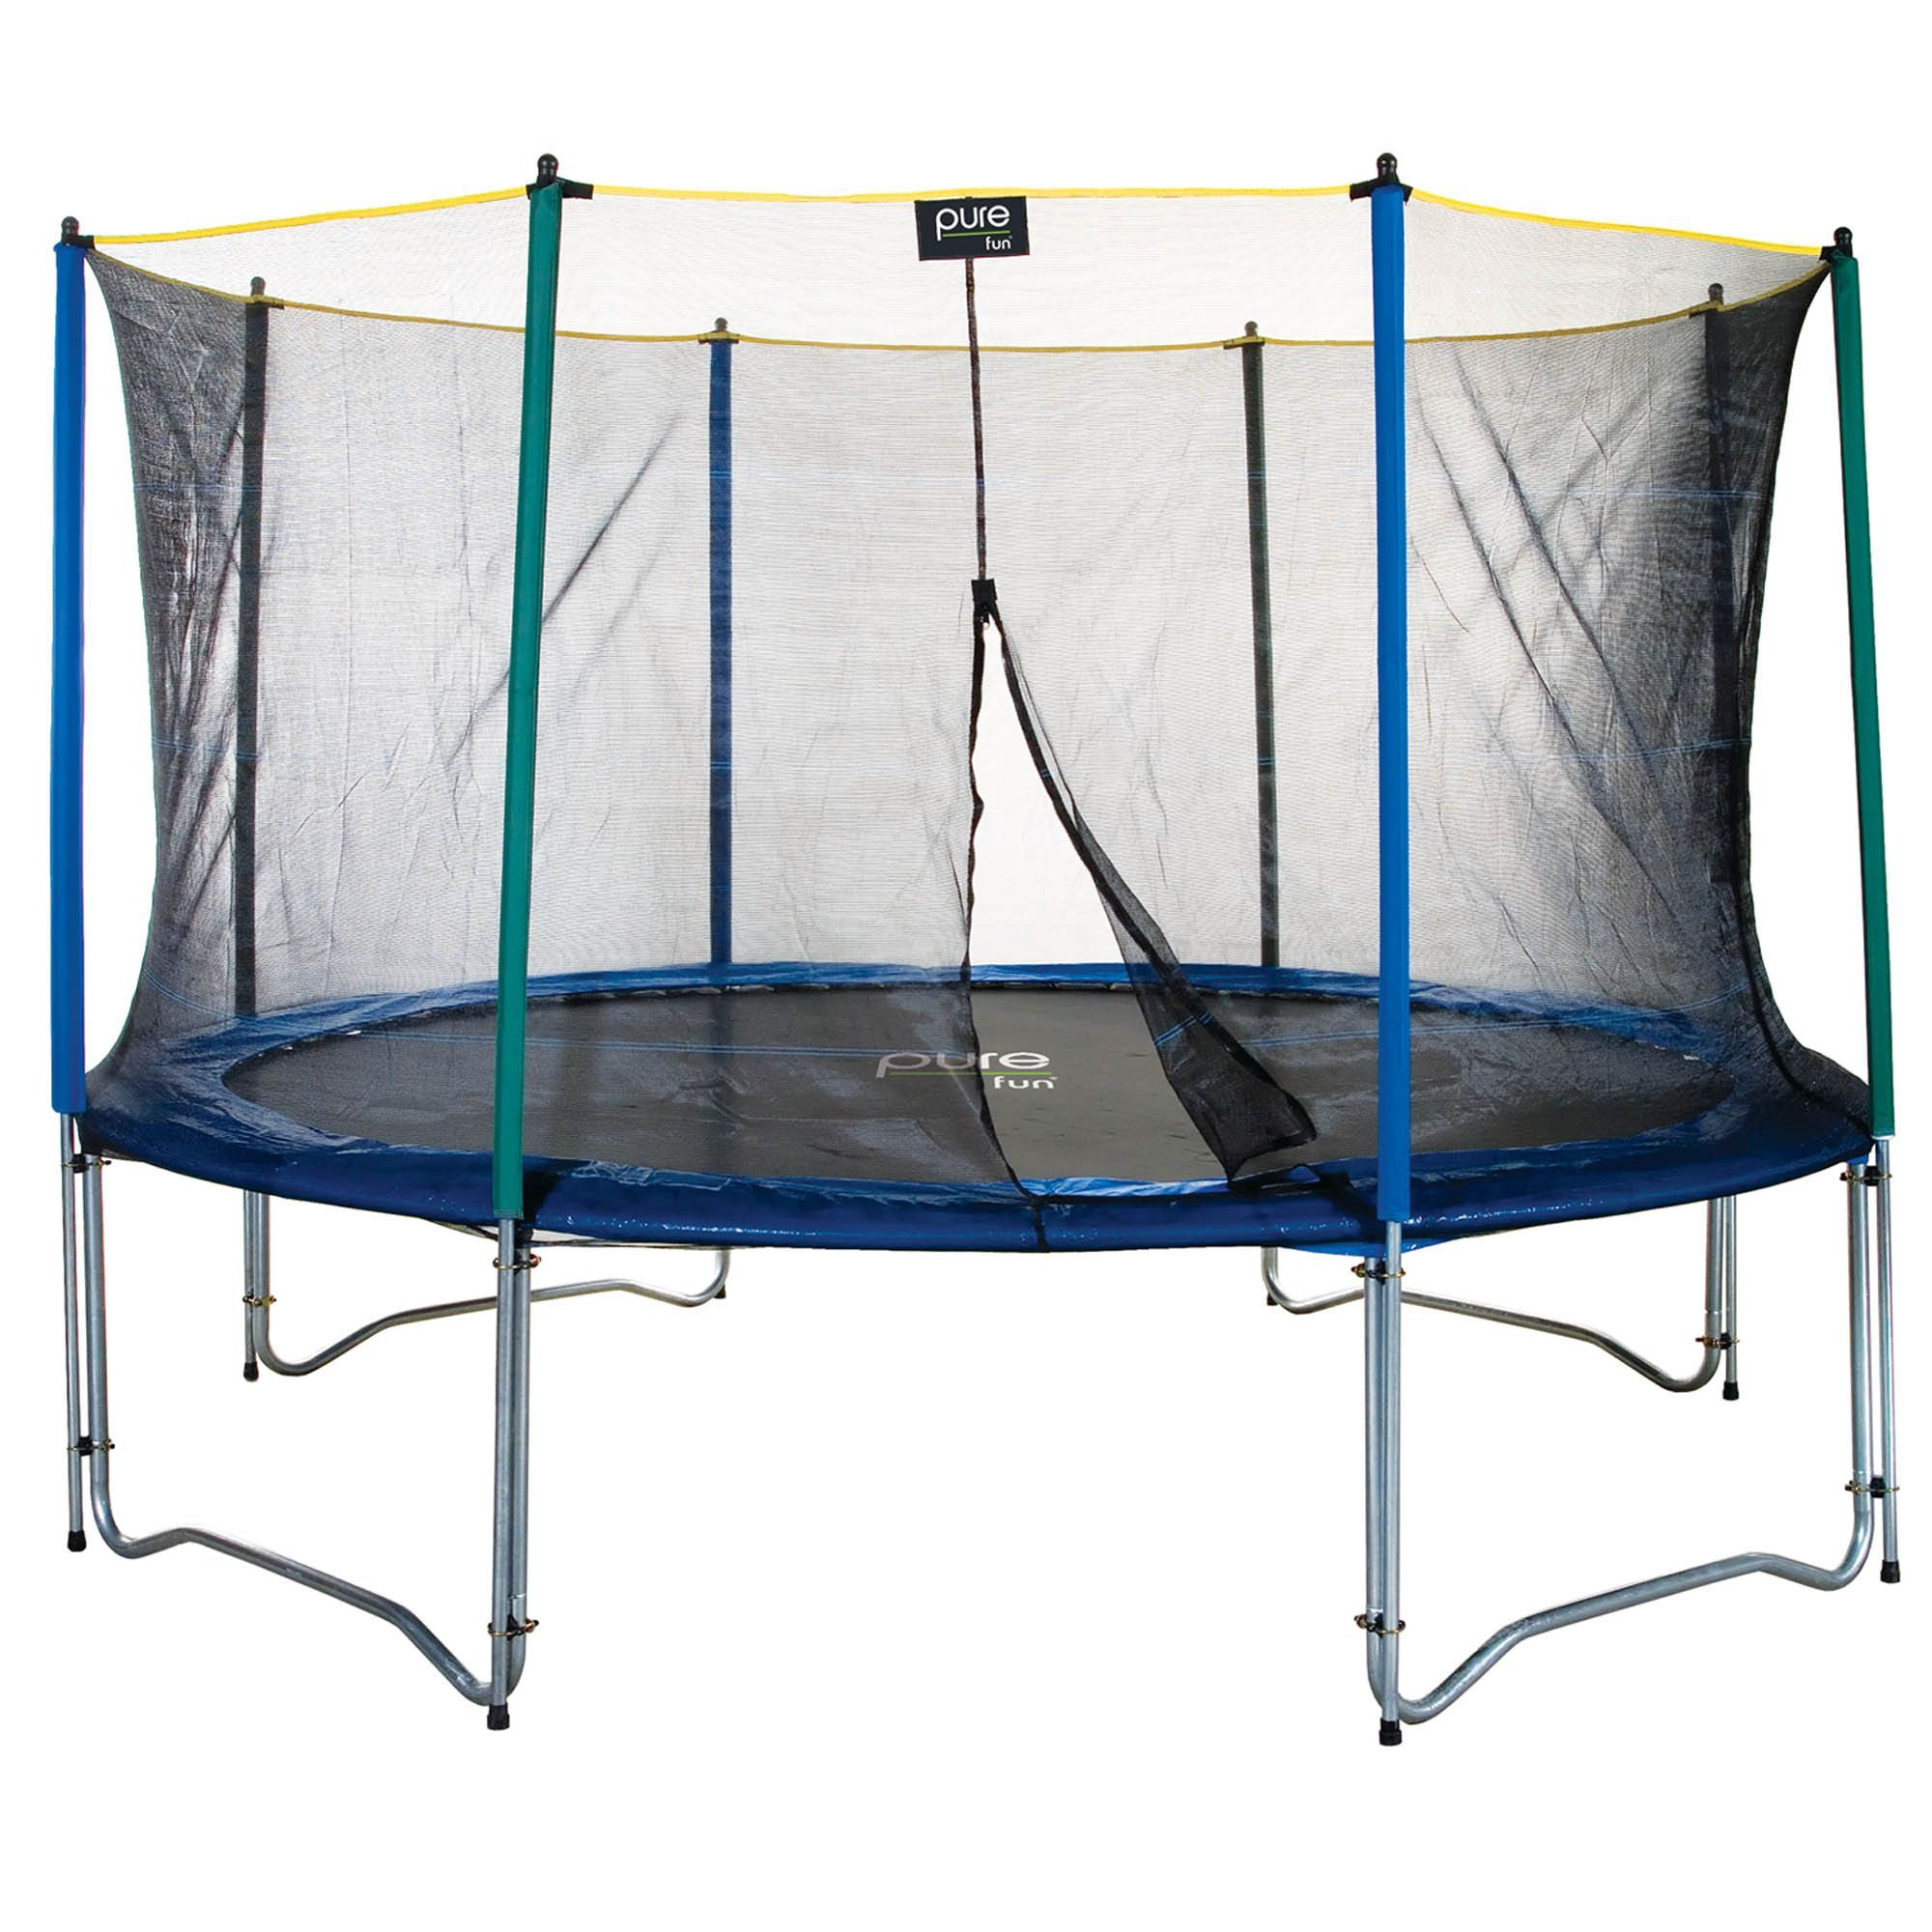 Pure Fun 12ft Trampoline With Enclosure Trampoline Enclosure Trampoline Trampoline Safety